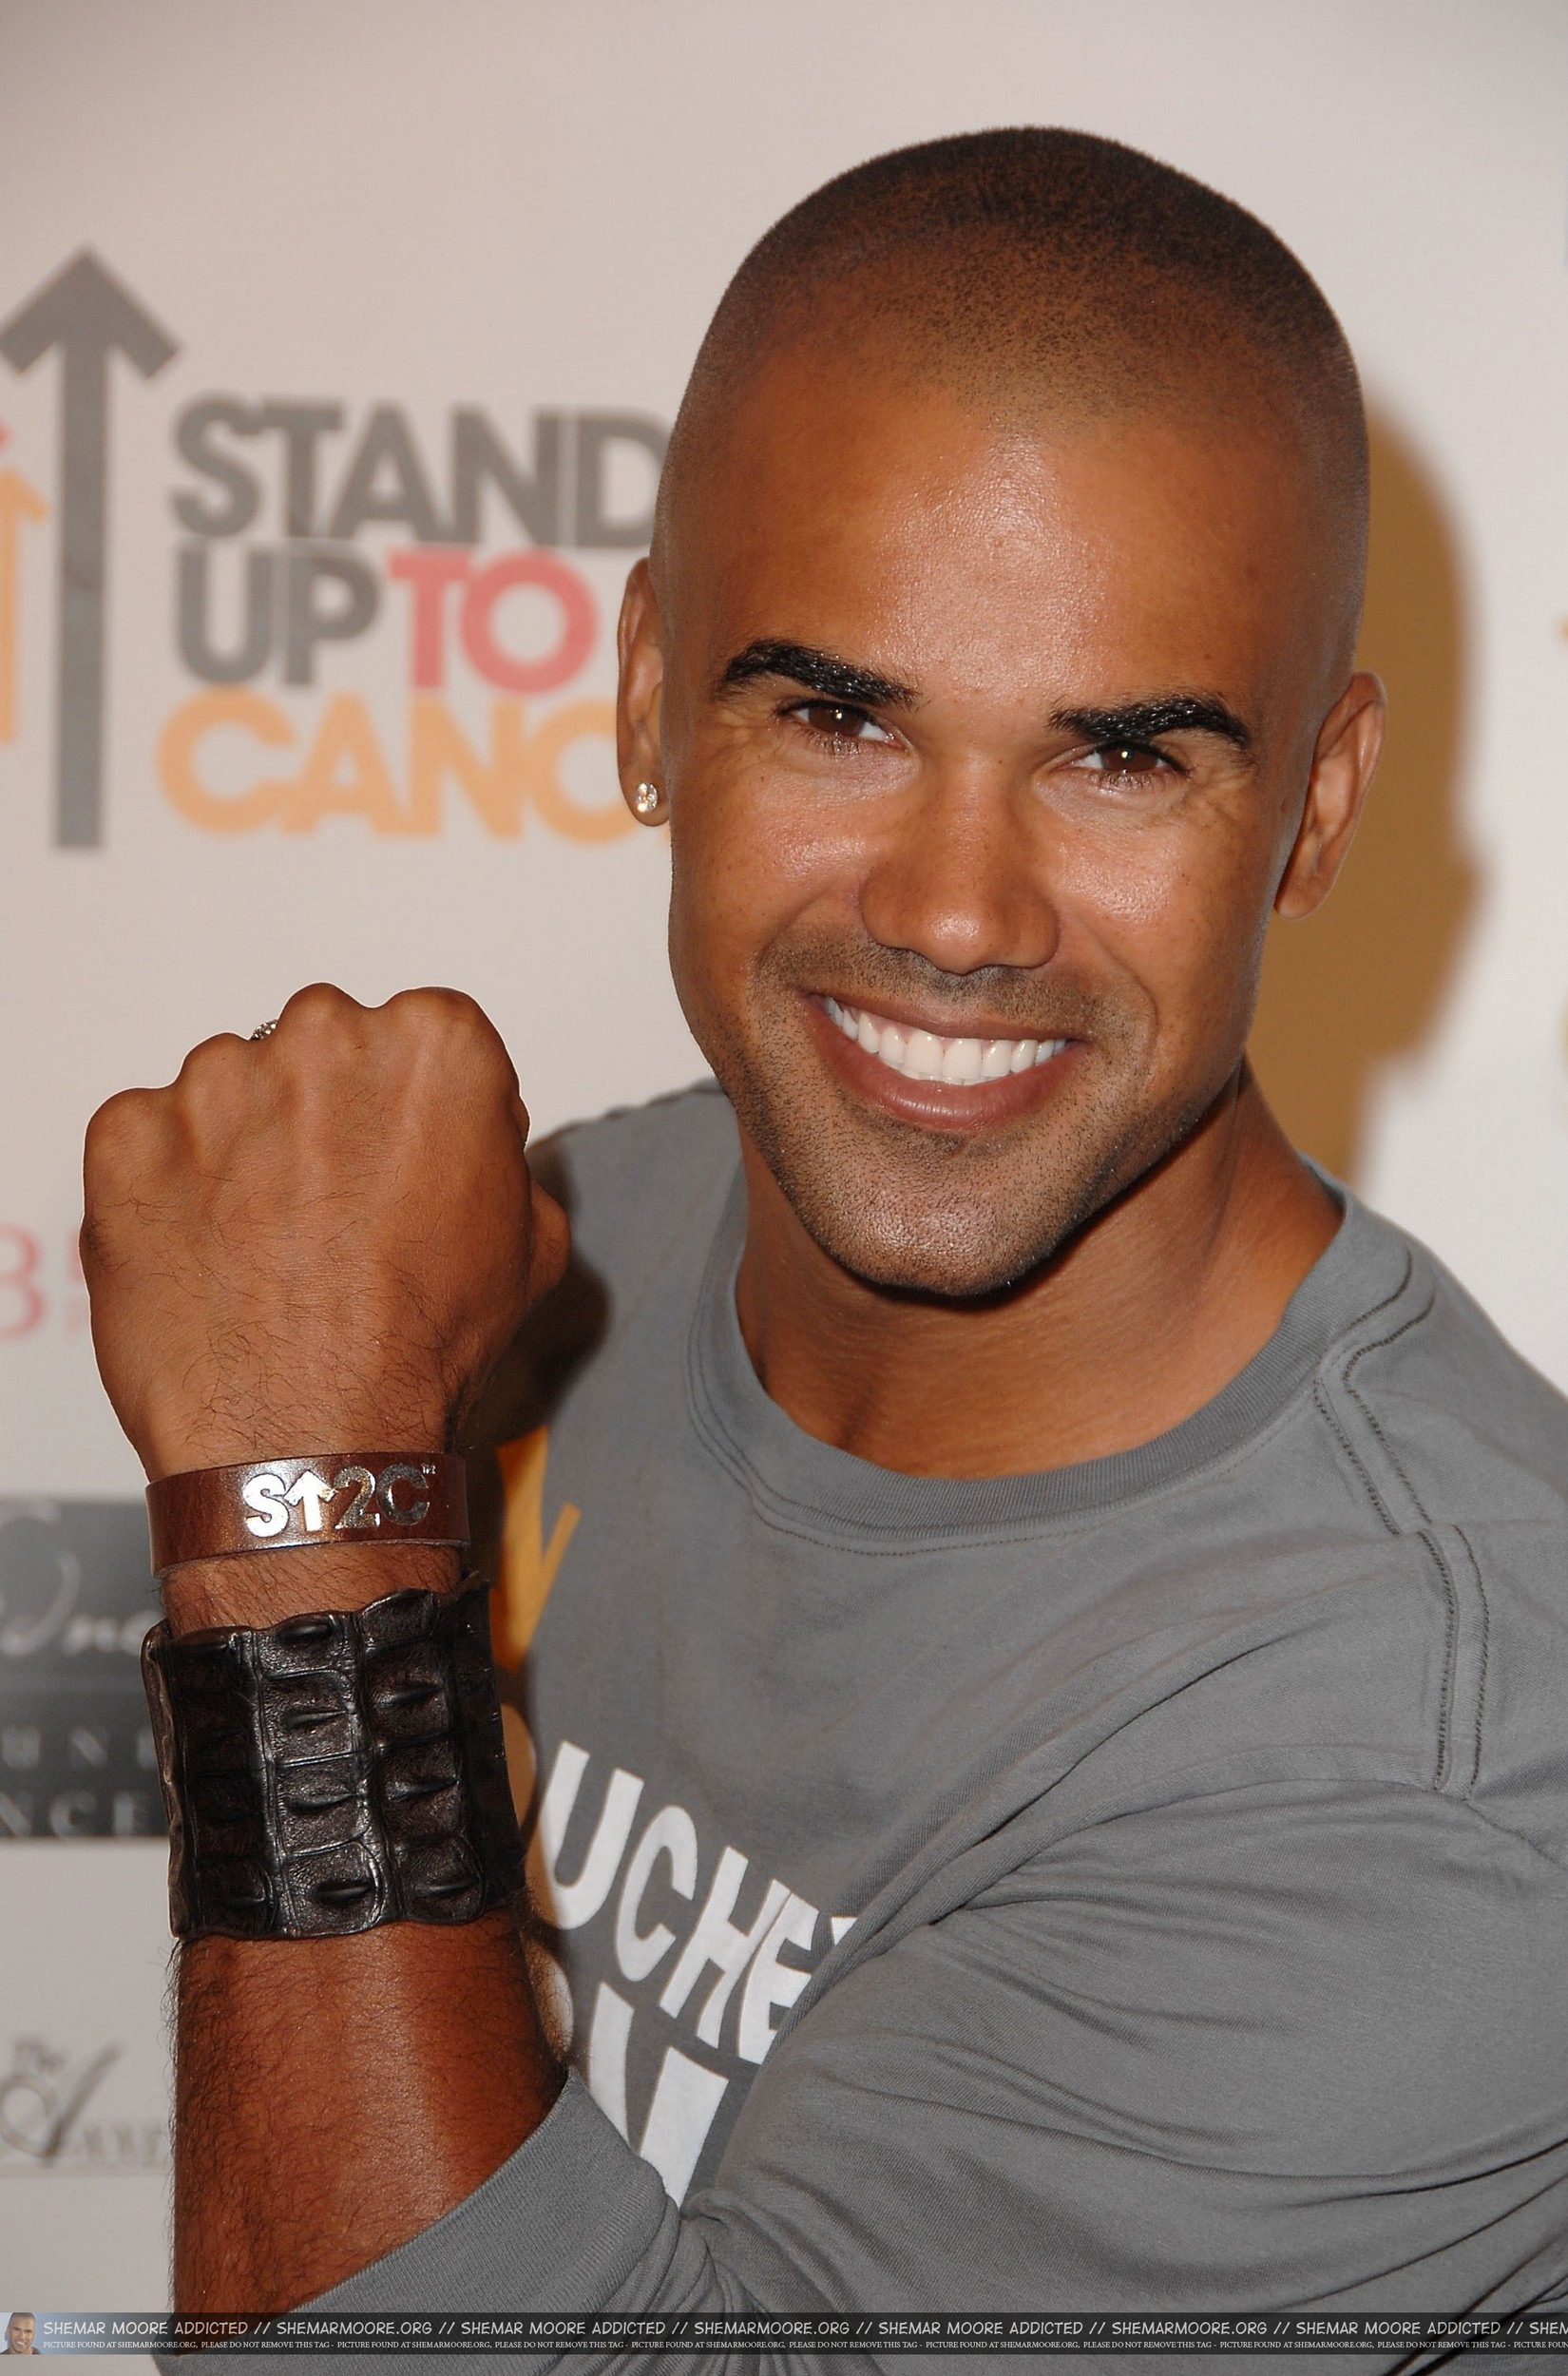 http://www.theplace.ru/archive/shemar_moore/img/88-1.jpg